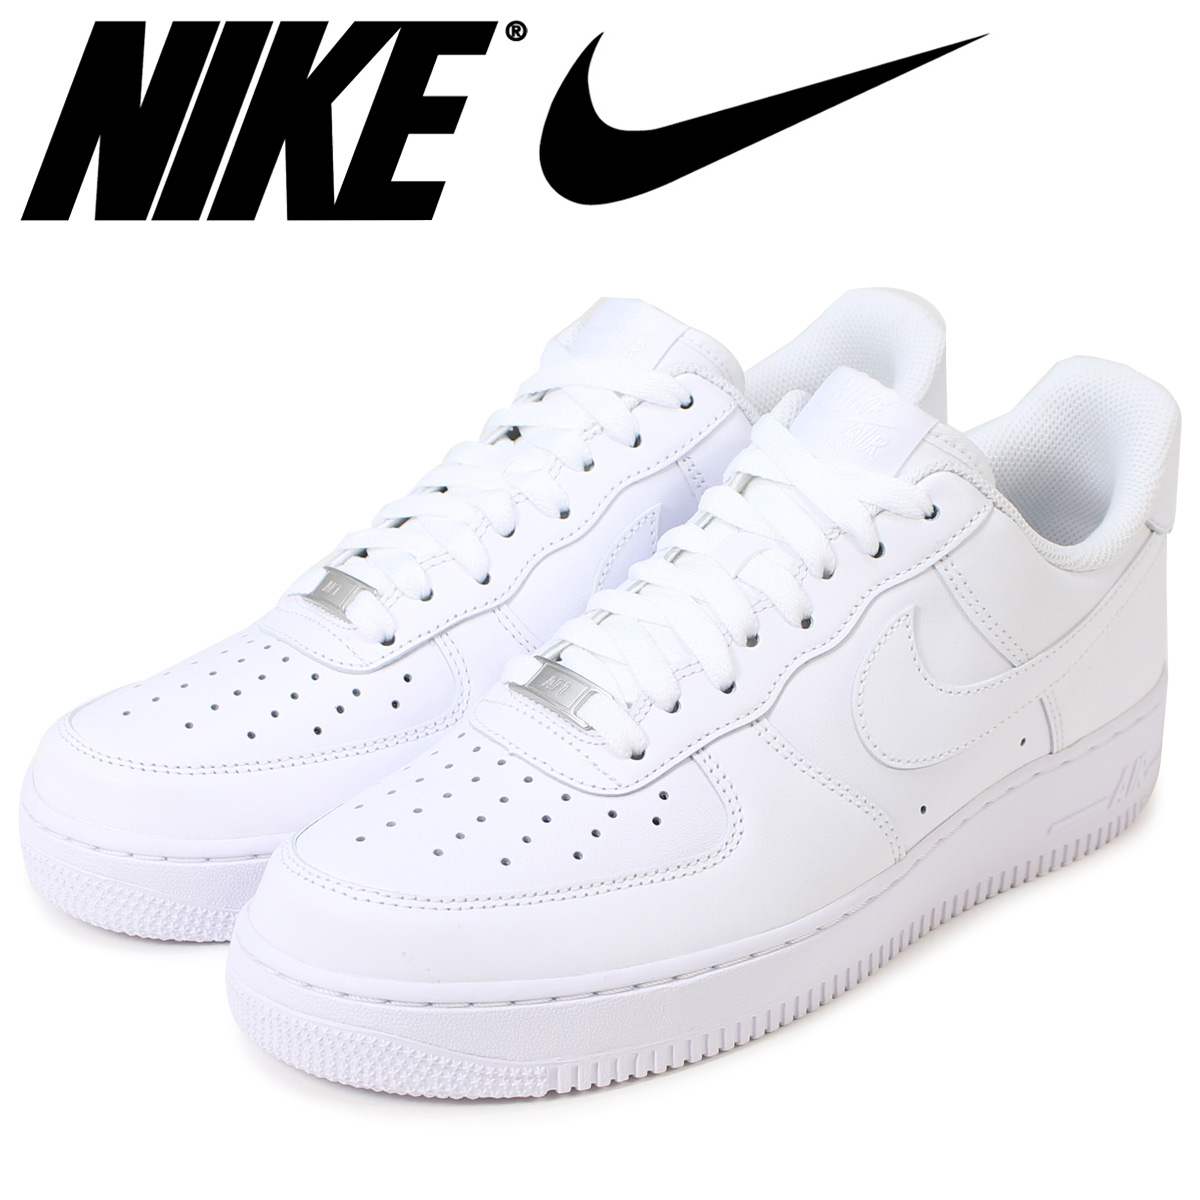 NIKE AIR FORCE 1 '07 LOW MEN'S SNEAKERS WHITE 315122-111